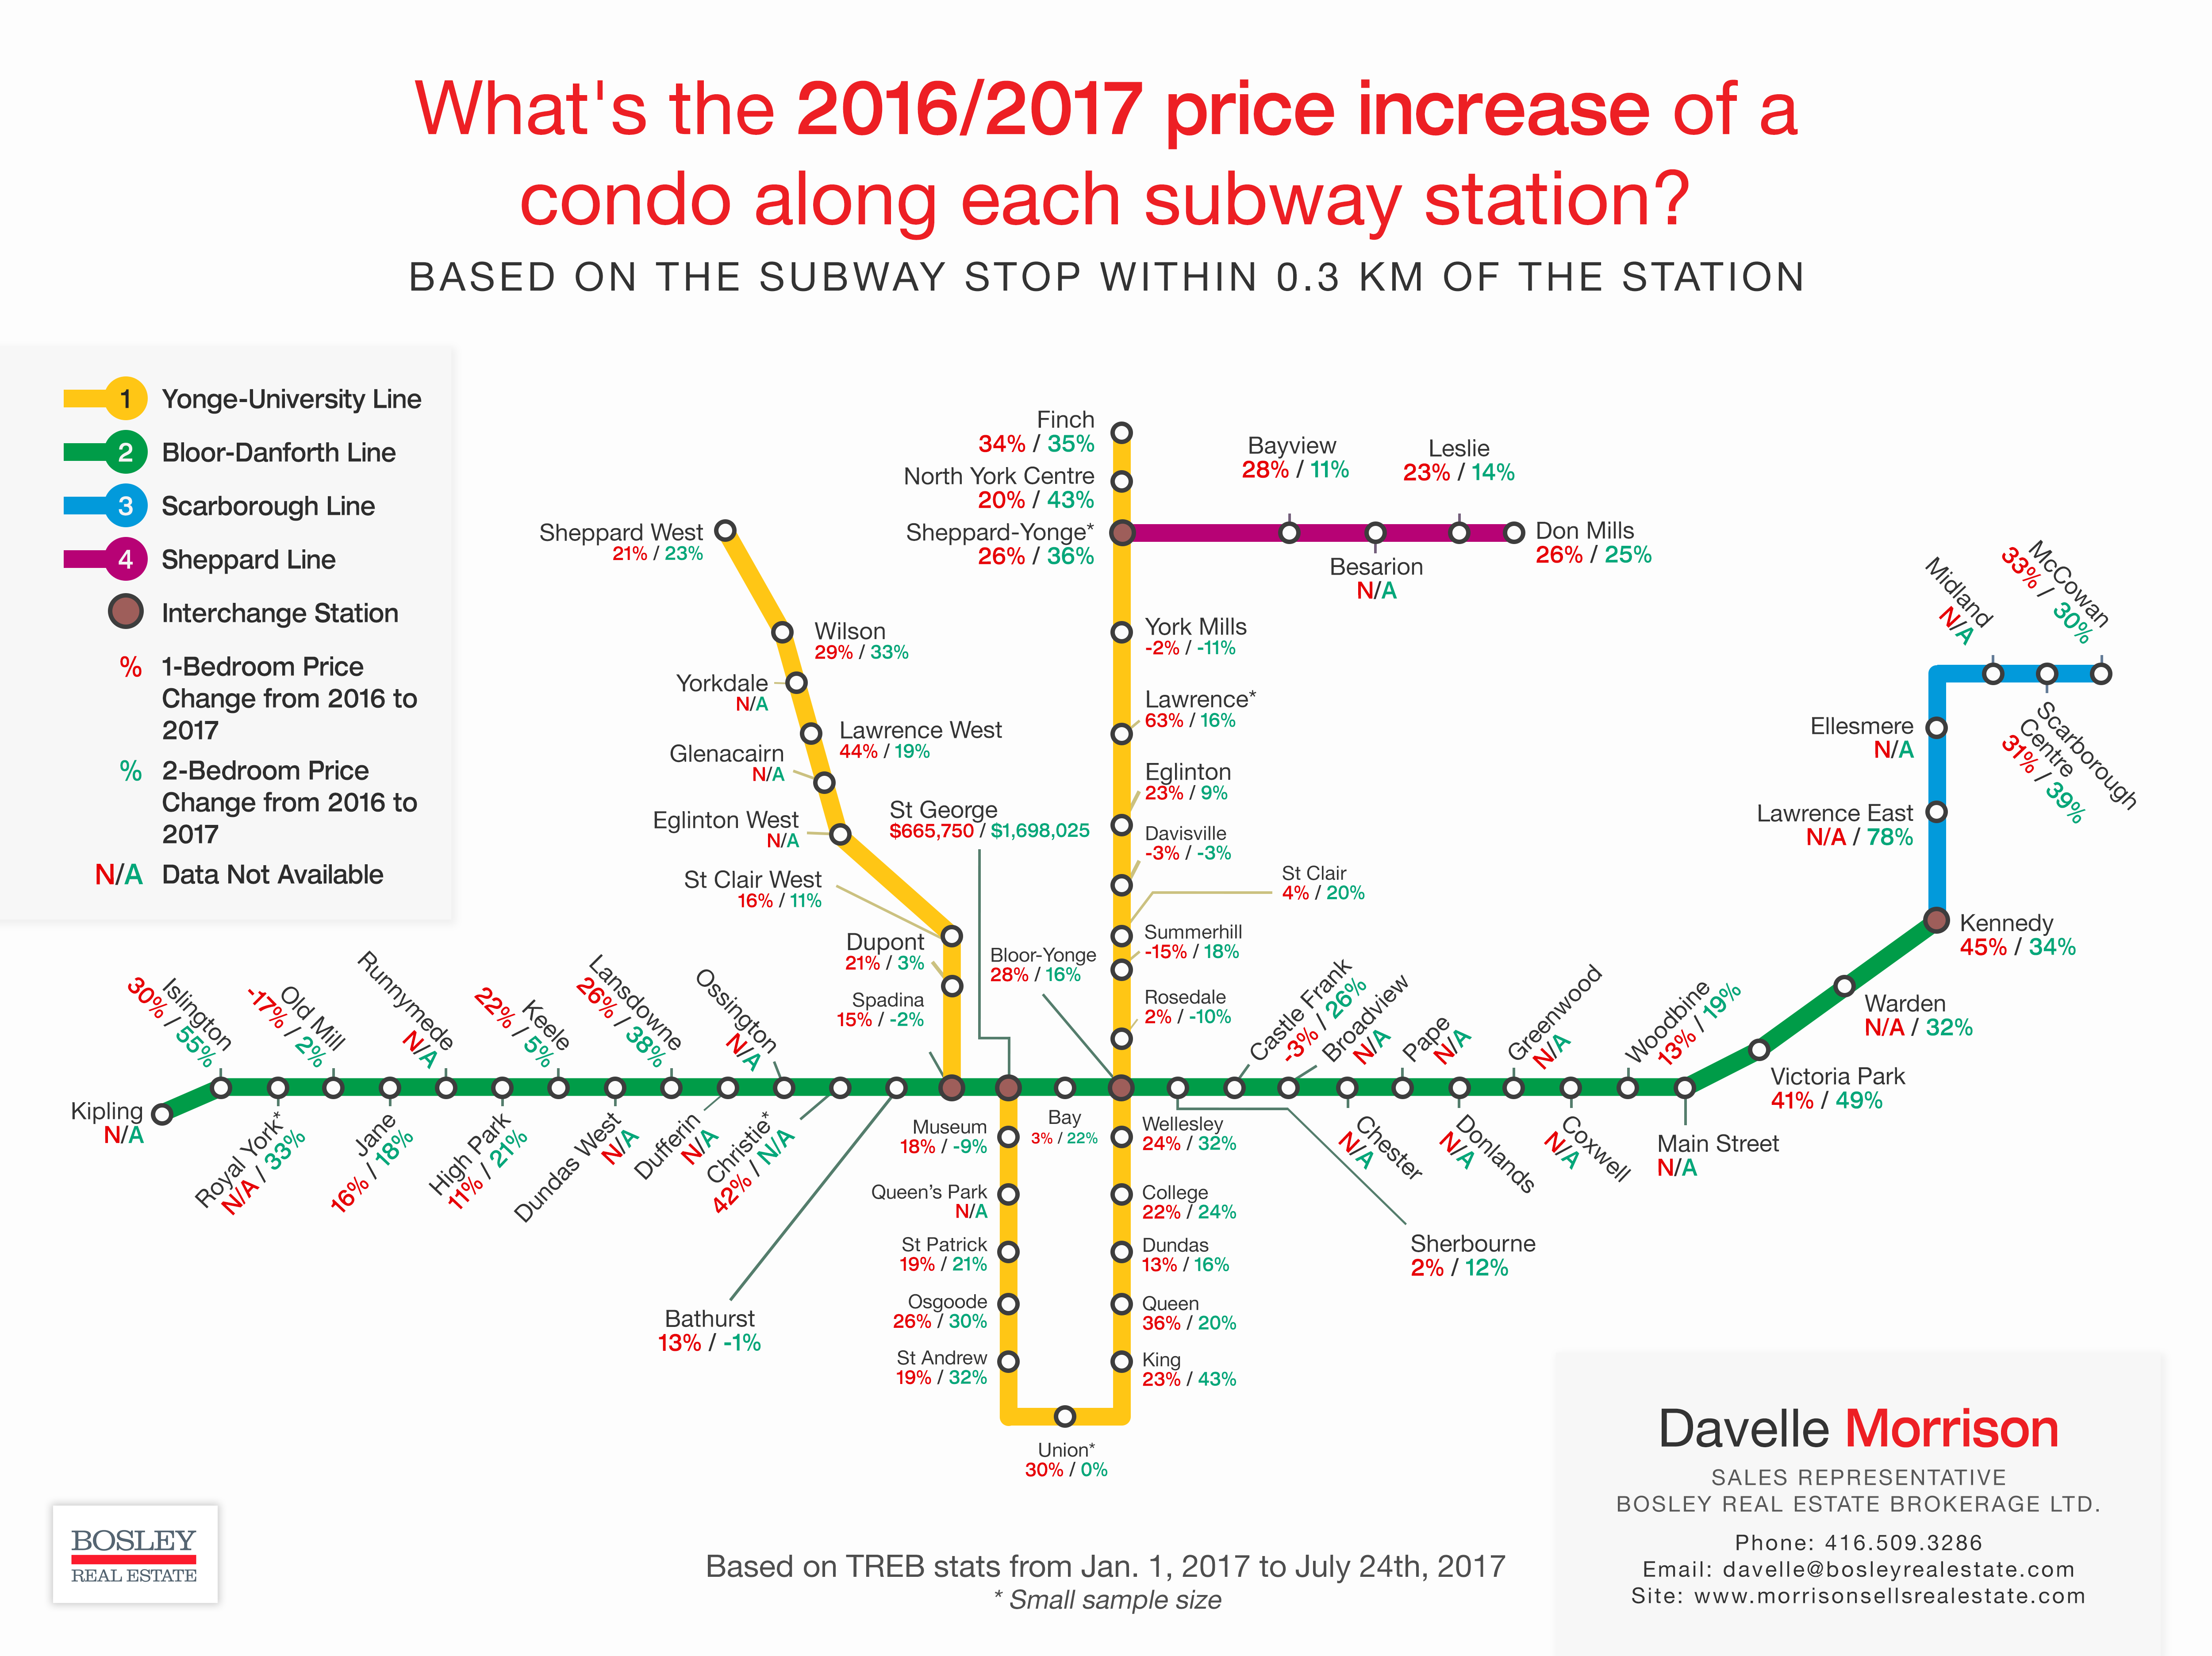 Price Increase of Condos Along TTC Stations